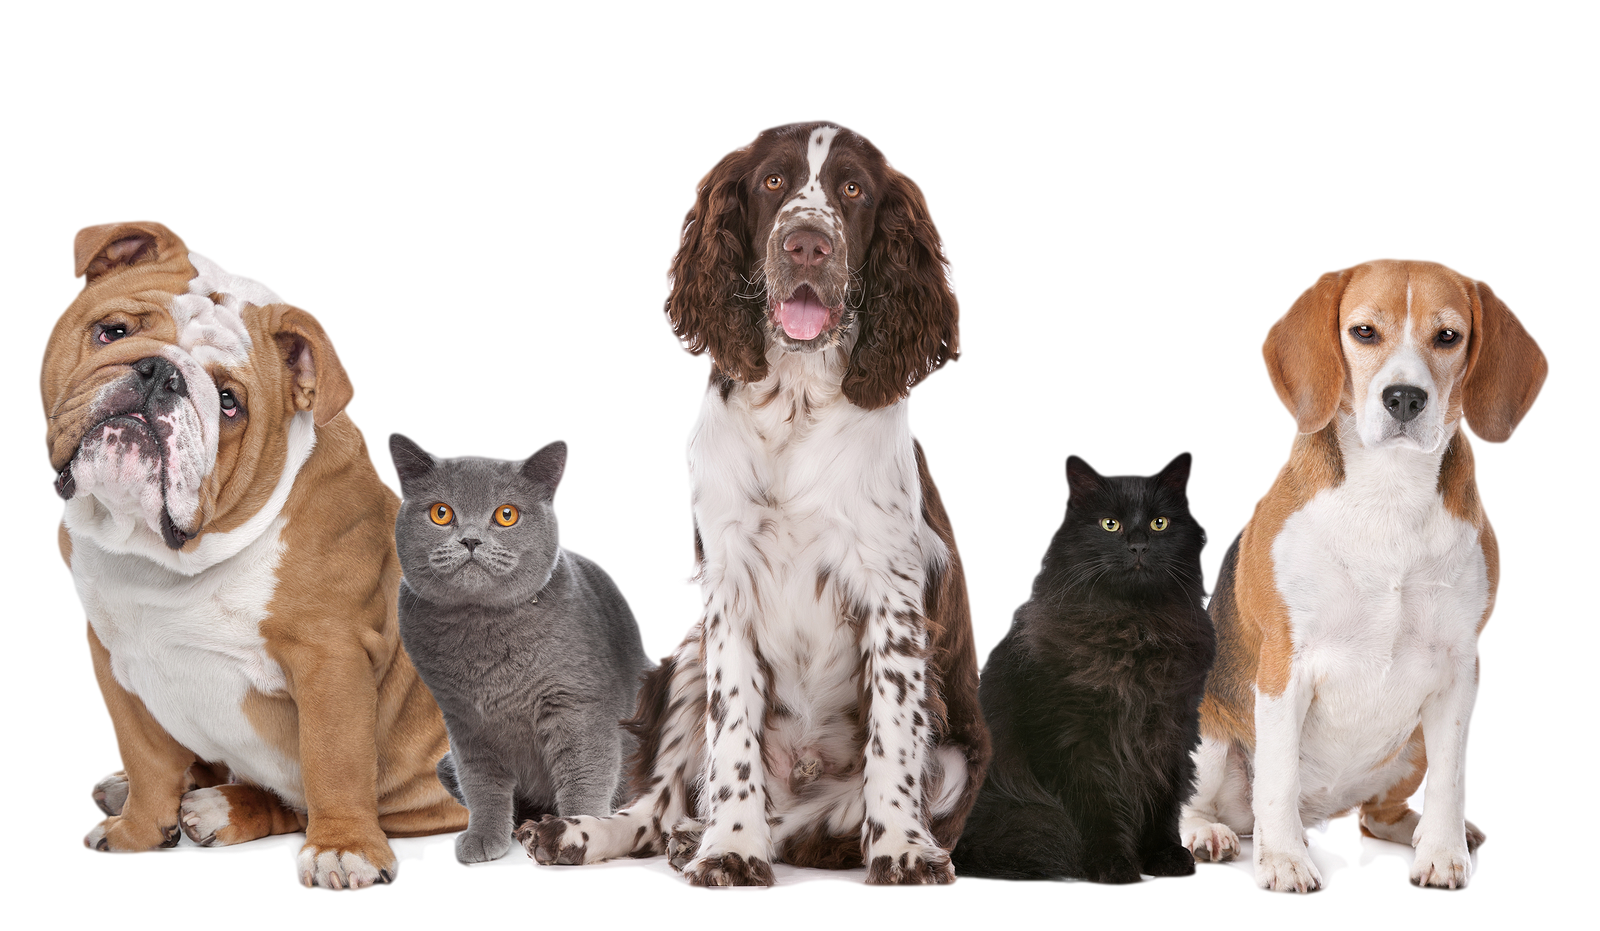 Dog and cat png. Hd dogs cats transparent